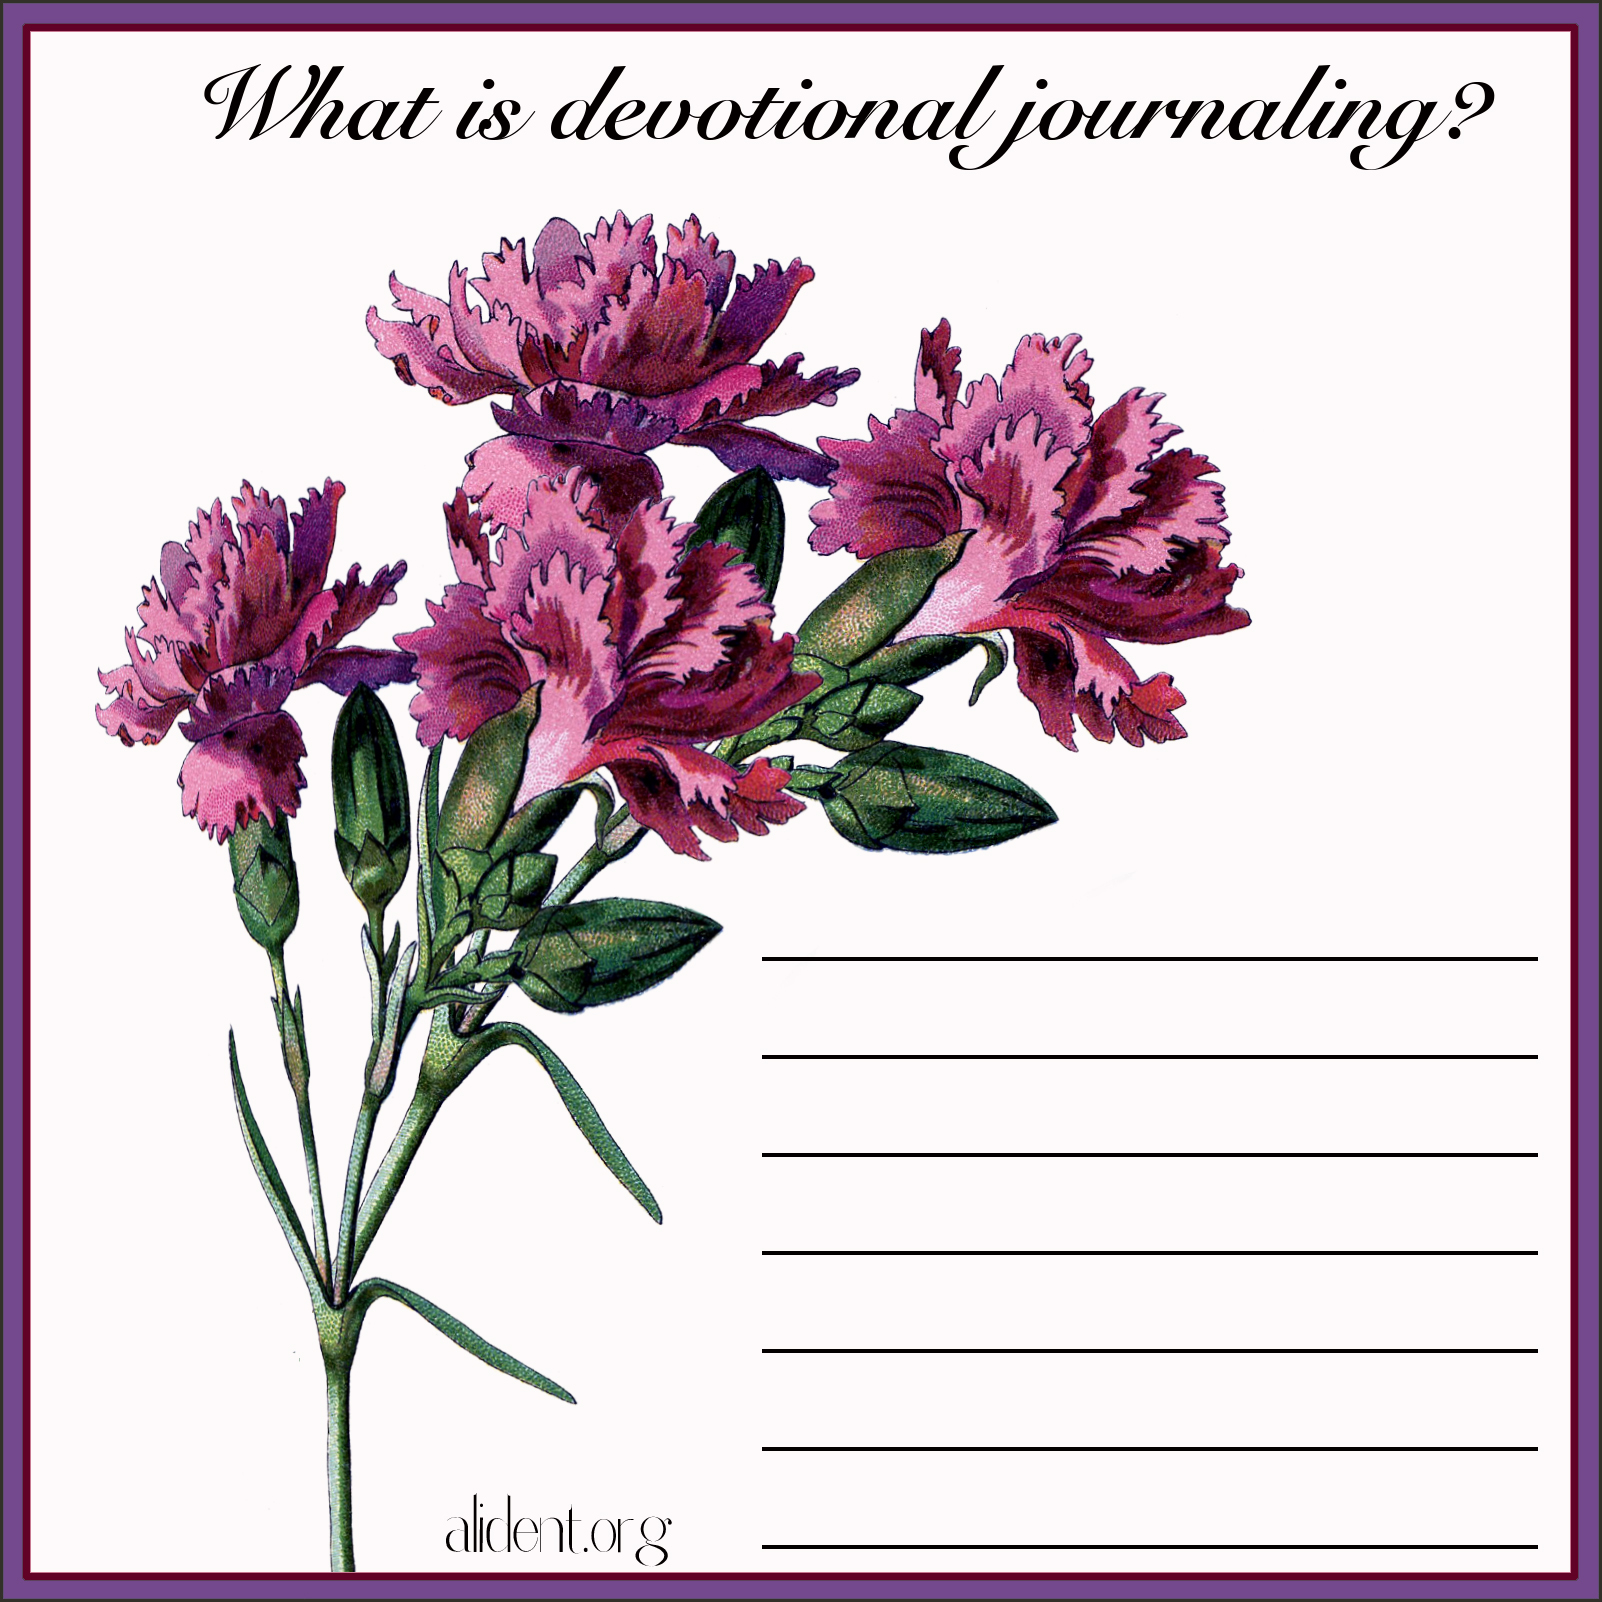 What is devotional journaling2